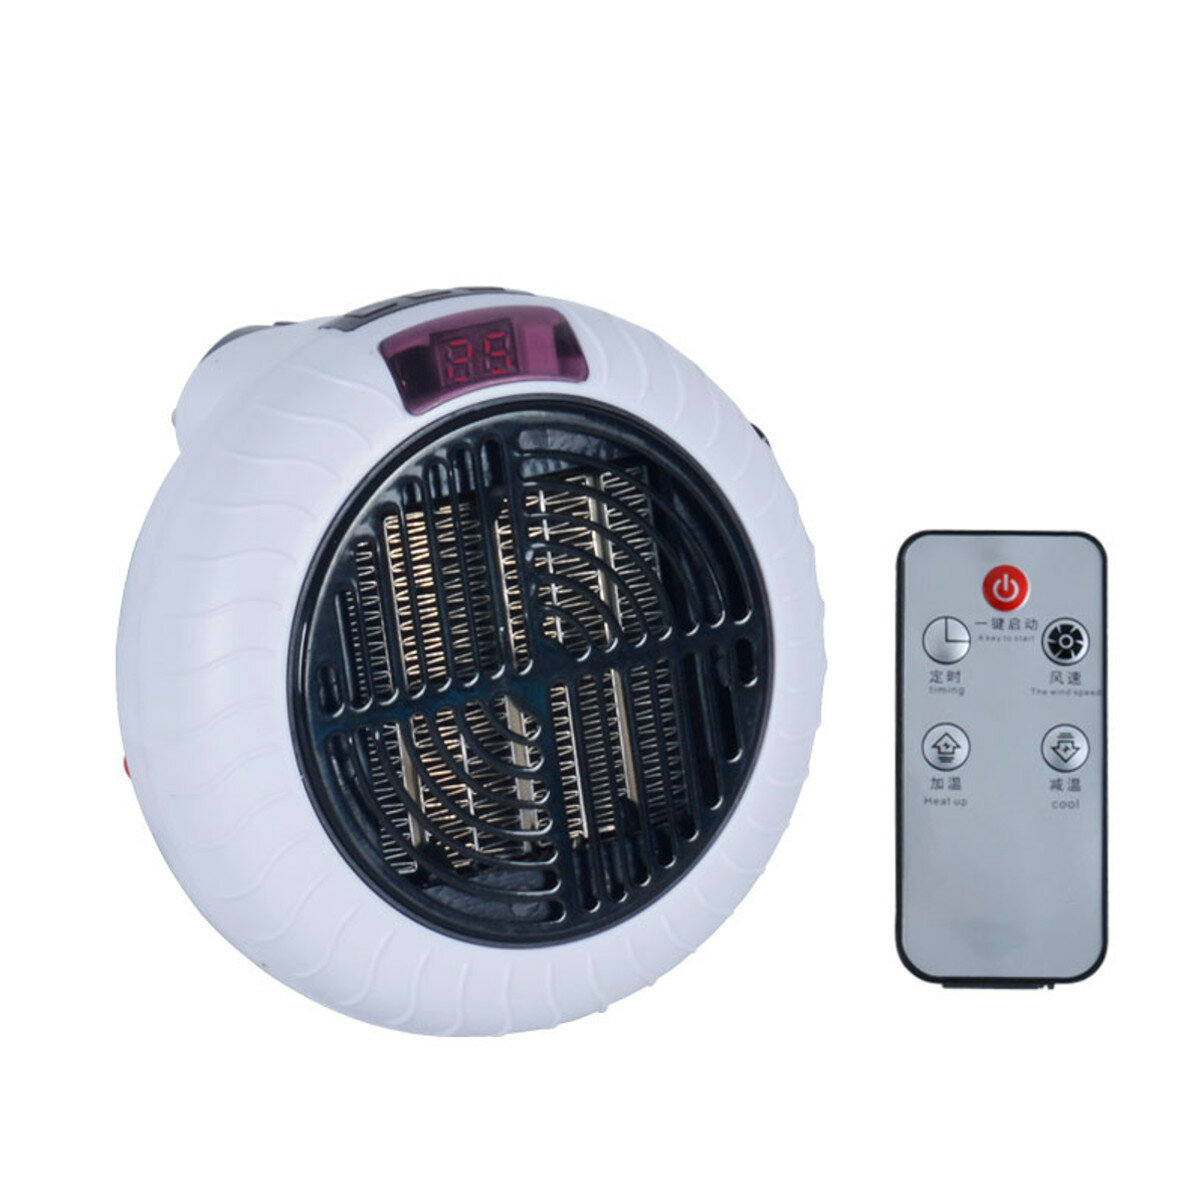 900W Mini Electric Heater Warm Household Wall Handy Heater Office Stove Room